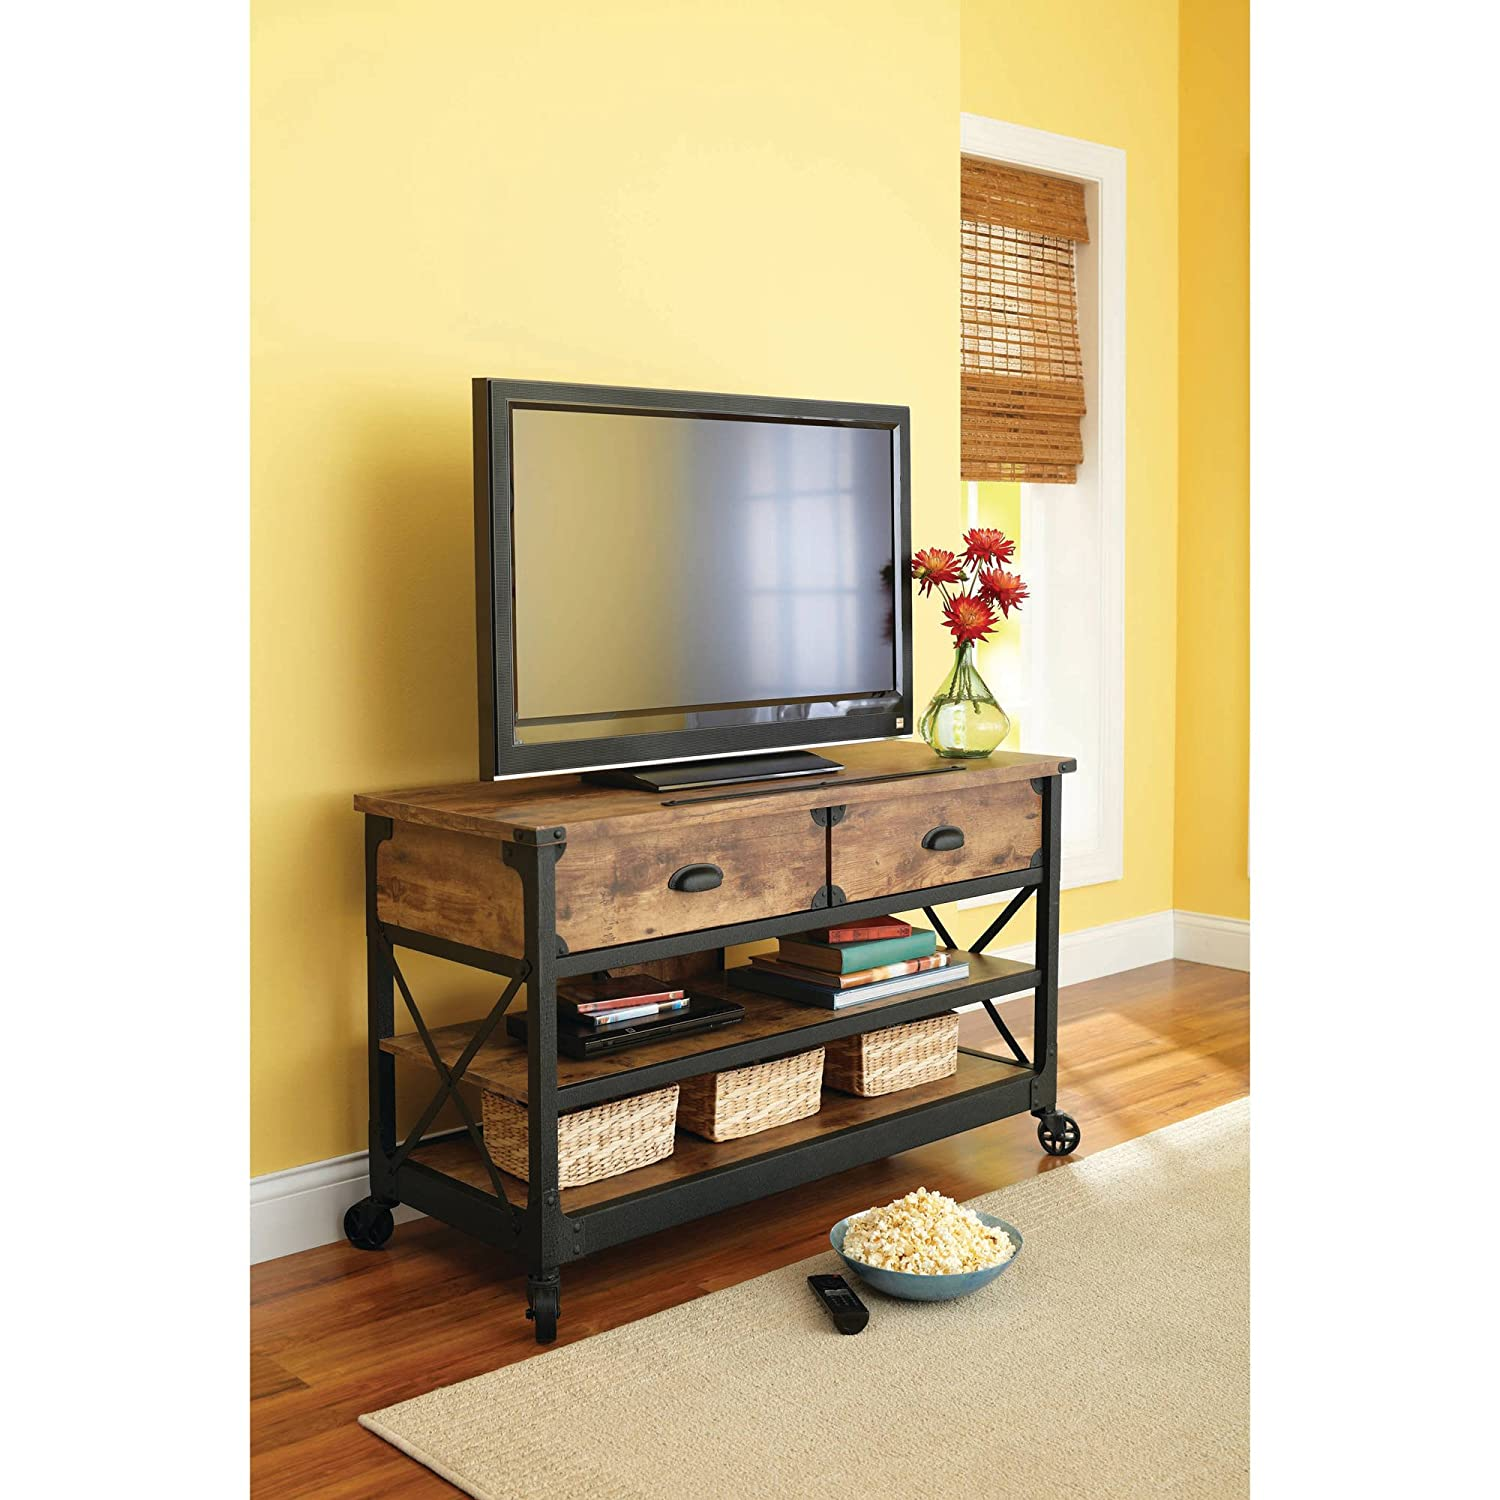 Sturdy Wooden Rustic Country Antiqued Black Pine Panel TV Stand for TVs up to 52 , Elegant Classic Home Entertainment Furniture in Natural Finish and Black Accents 49.134 W x 21.26 D x 28.74 H